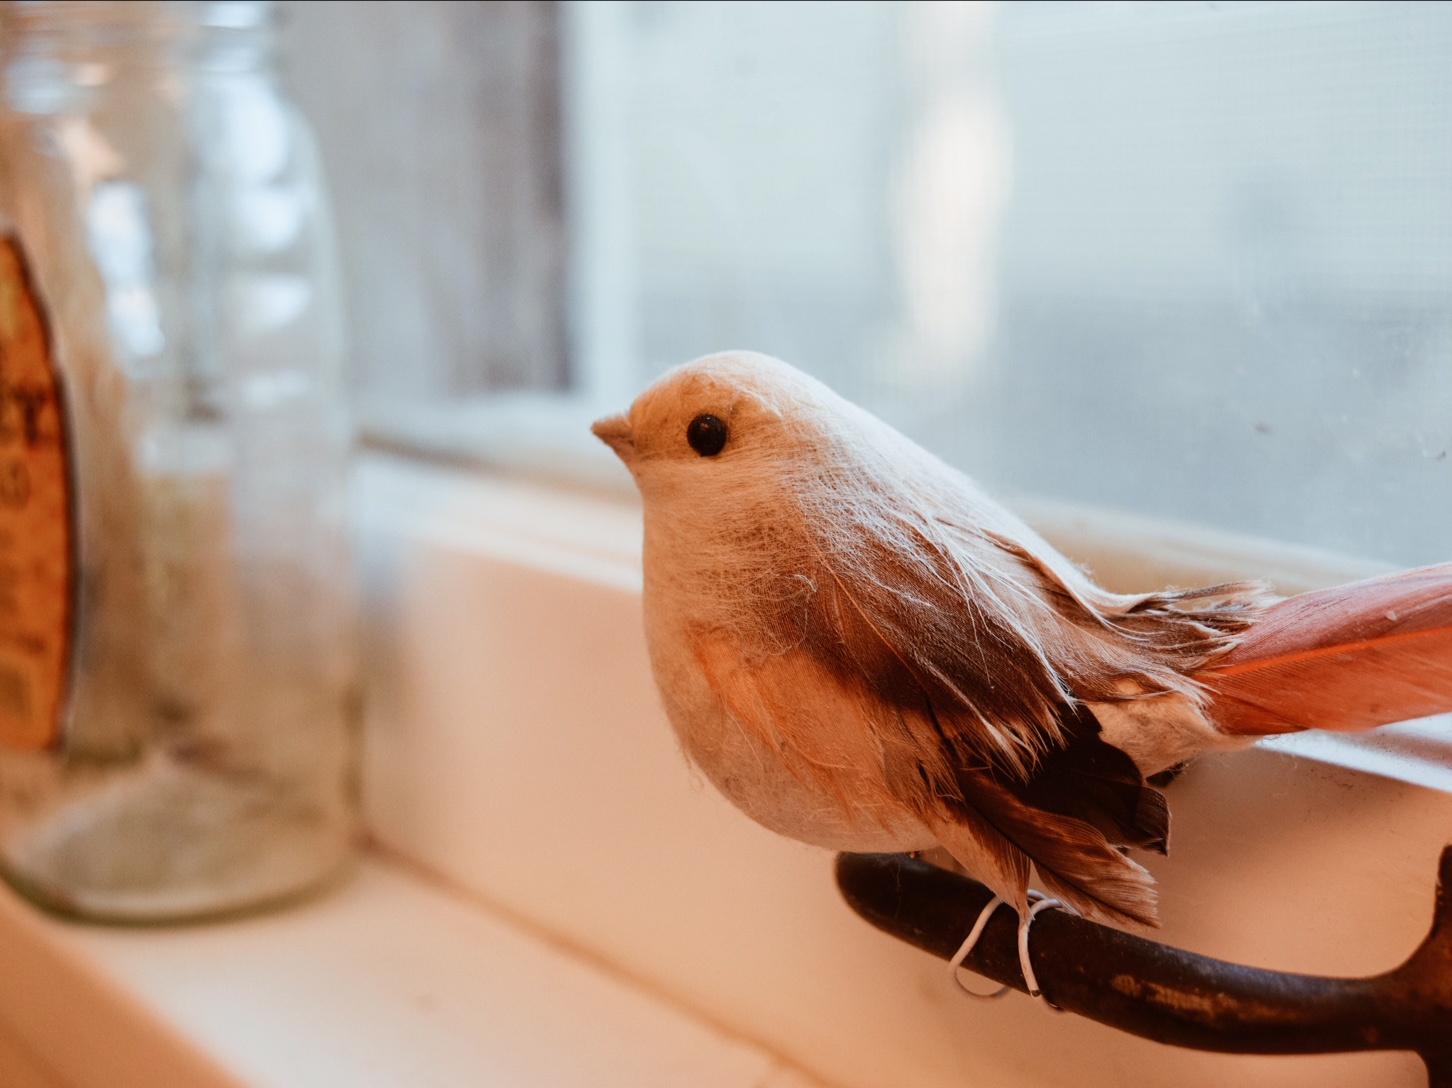 Our little friend on the windowsill.